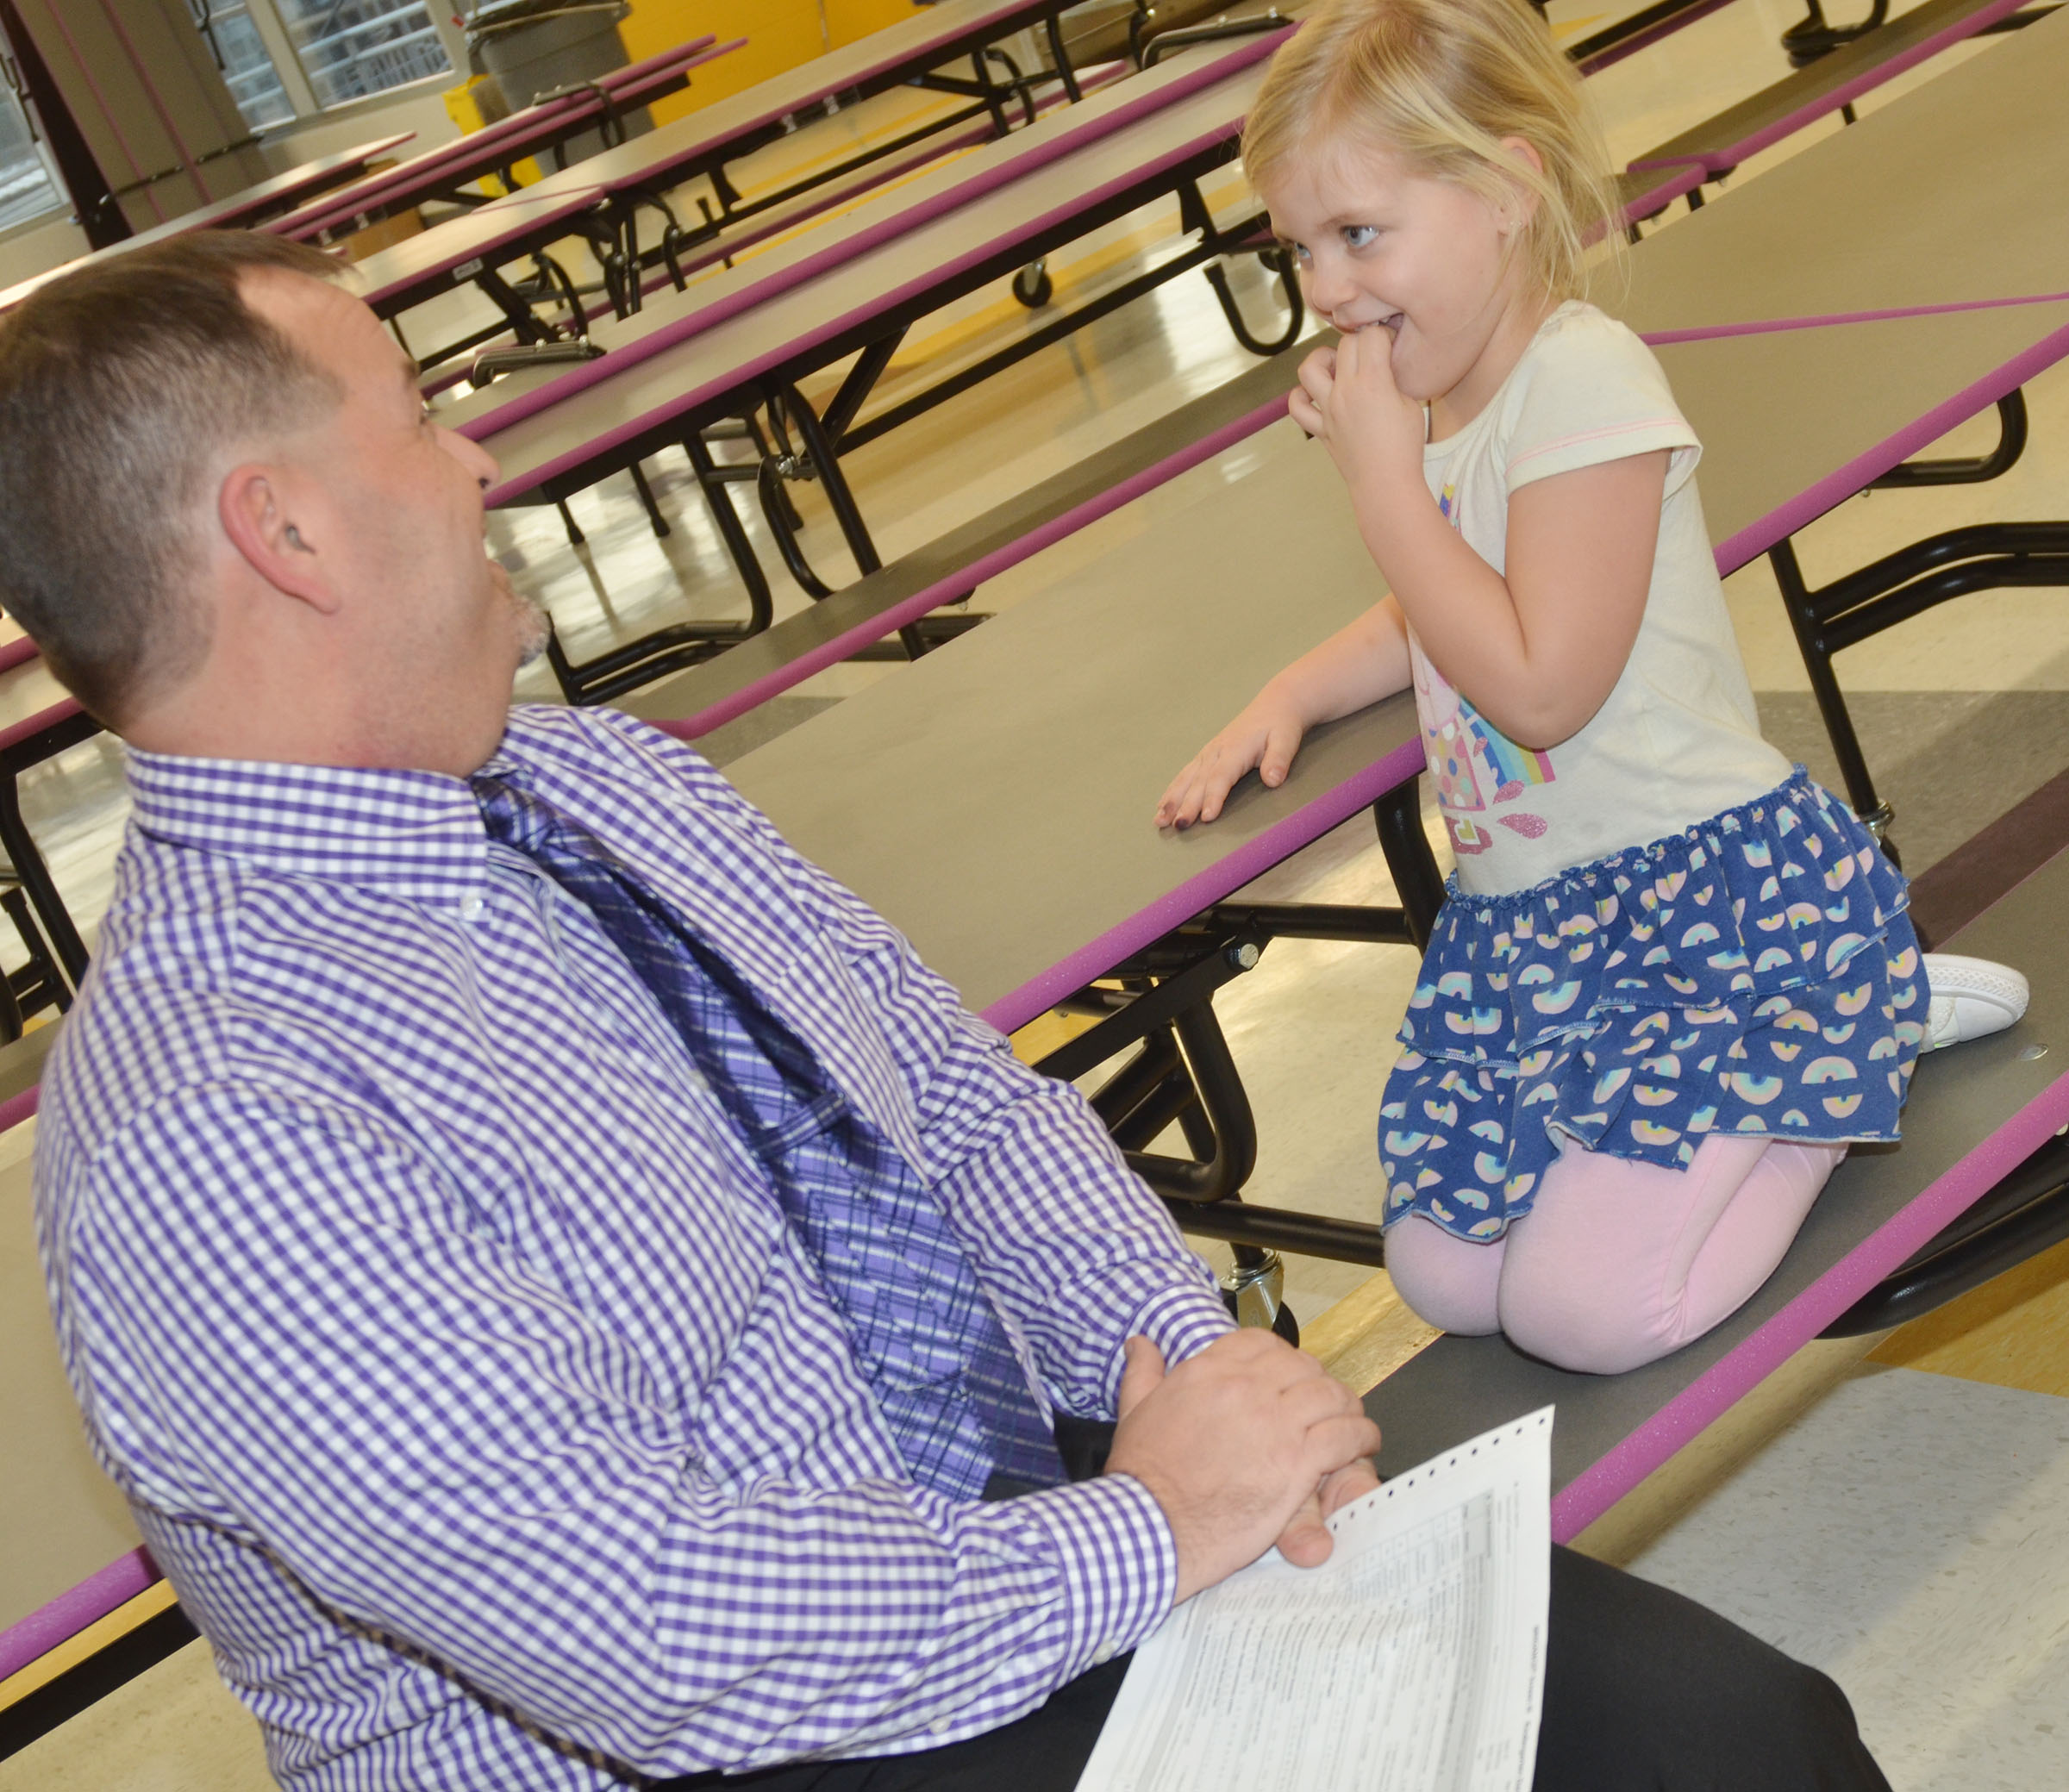 CES Principal Ricky Hunt asks Remi Petett some questions to see if she is ready to begin kindergarten next year.